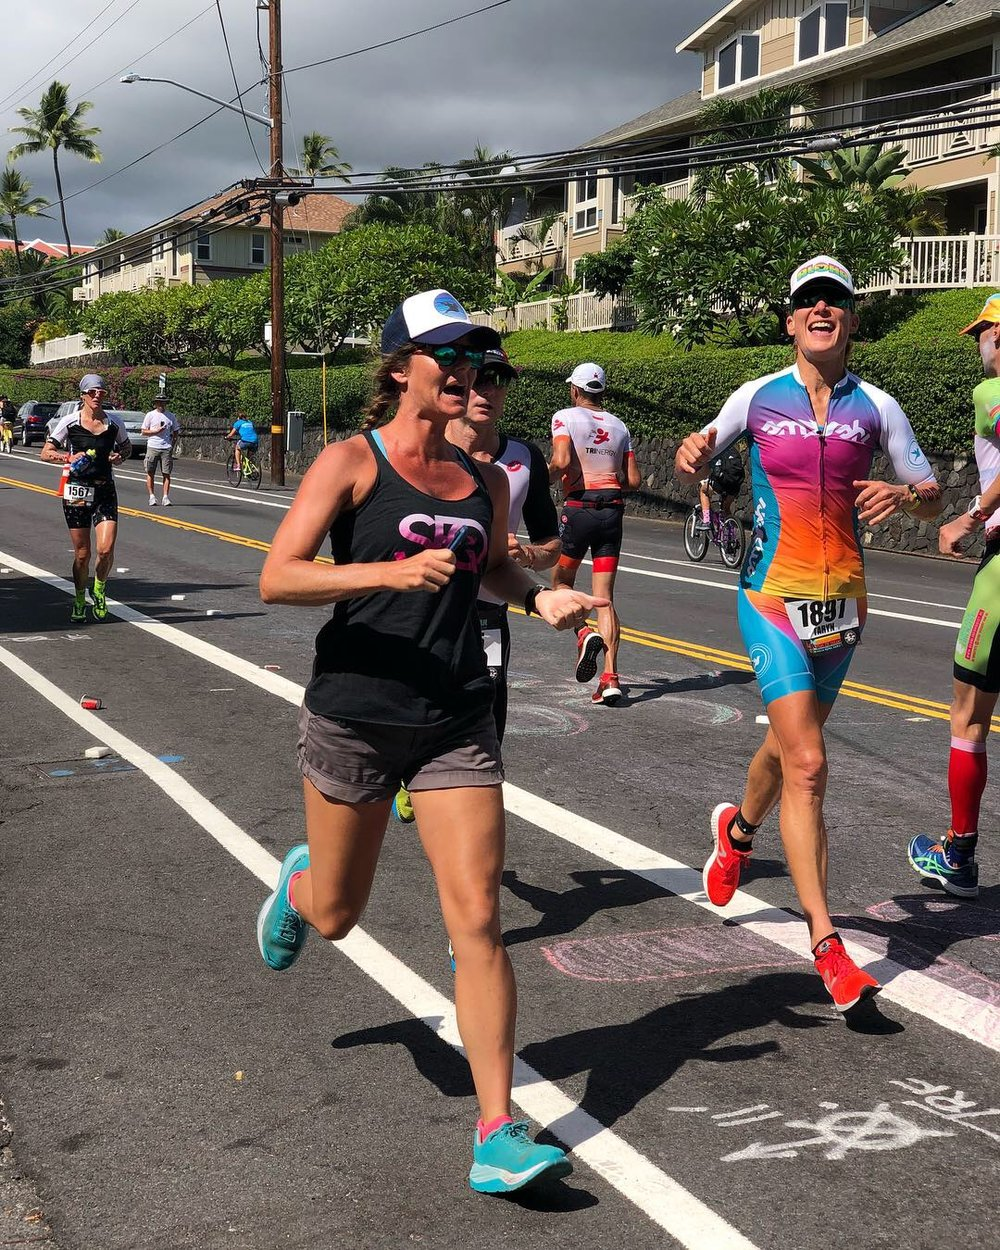 Sarah running alongside her coach last October at the Ironman World Championship in Kona, HI.